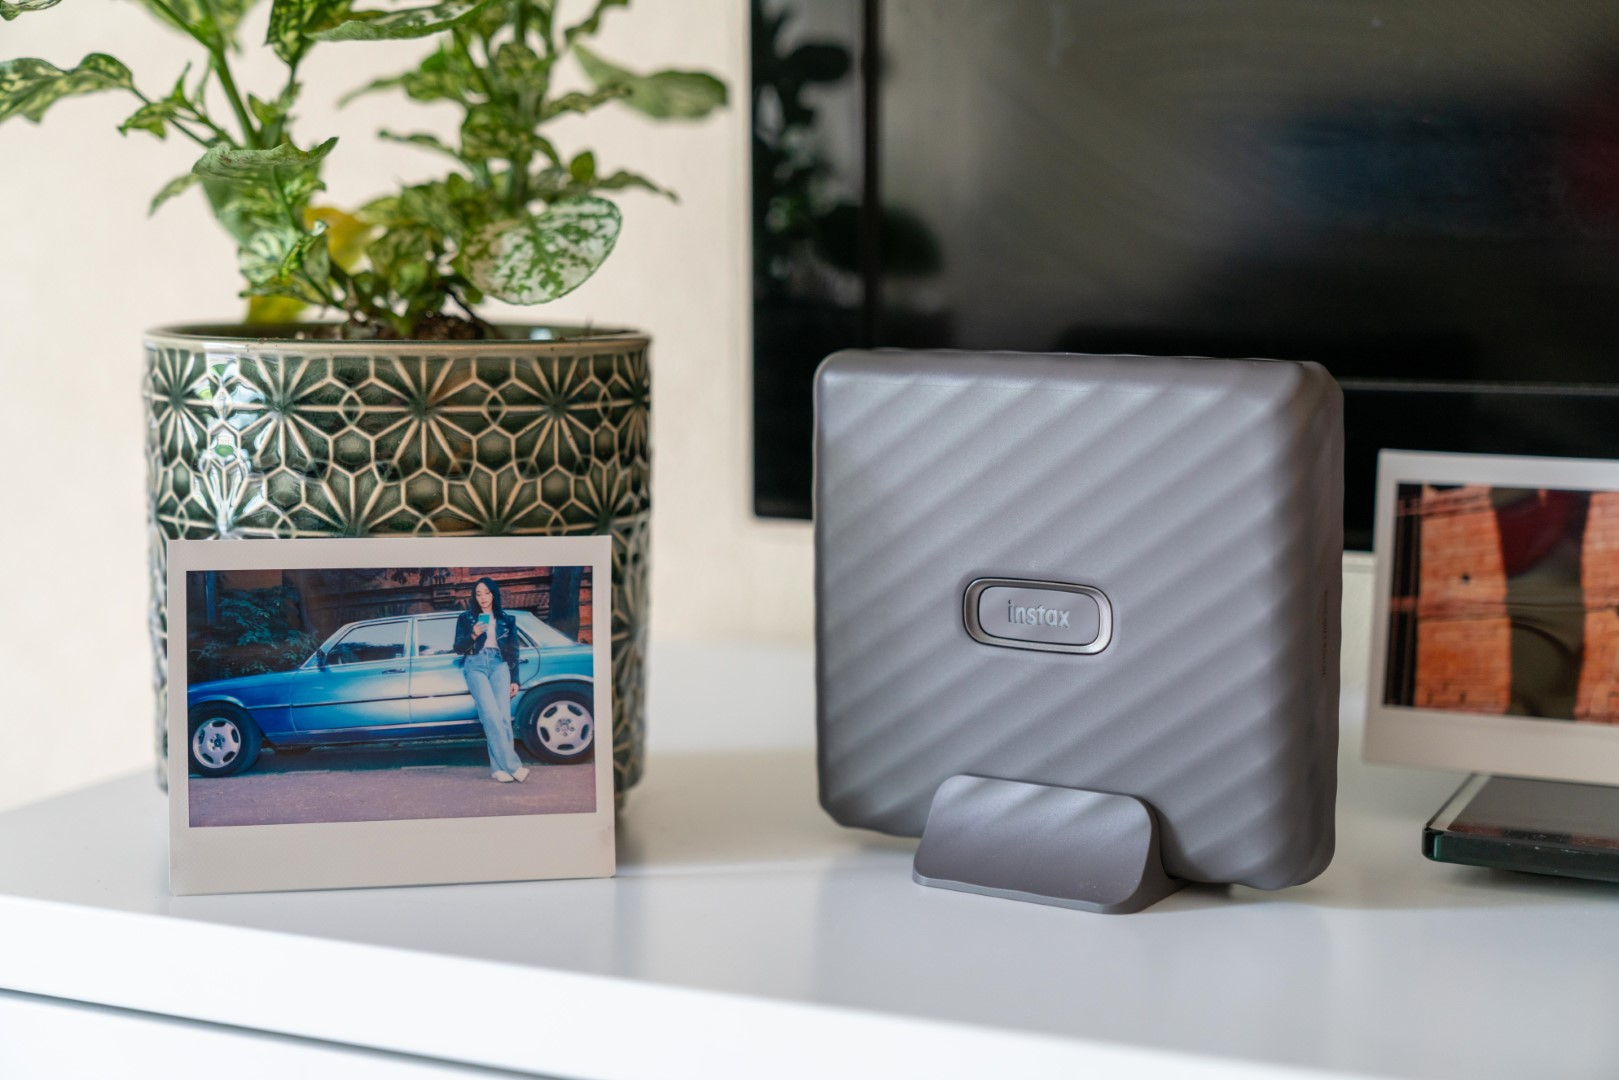 Fujifilm introduces Link Wide: the instax portable printer